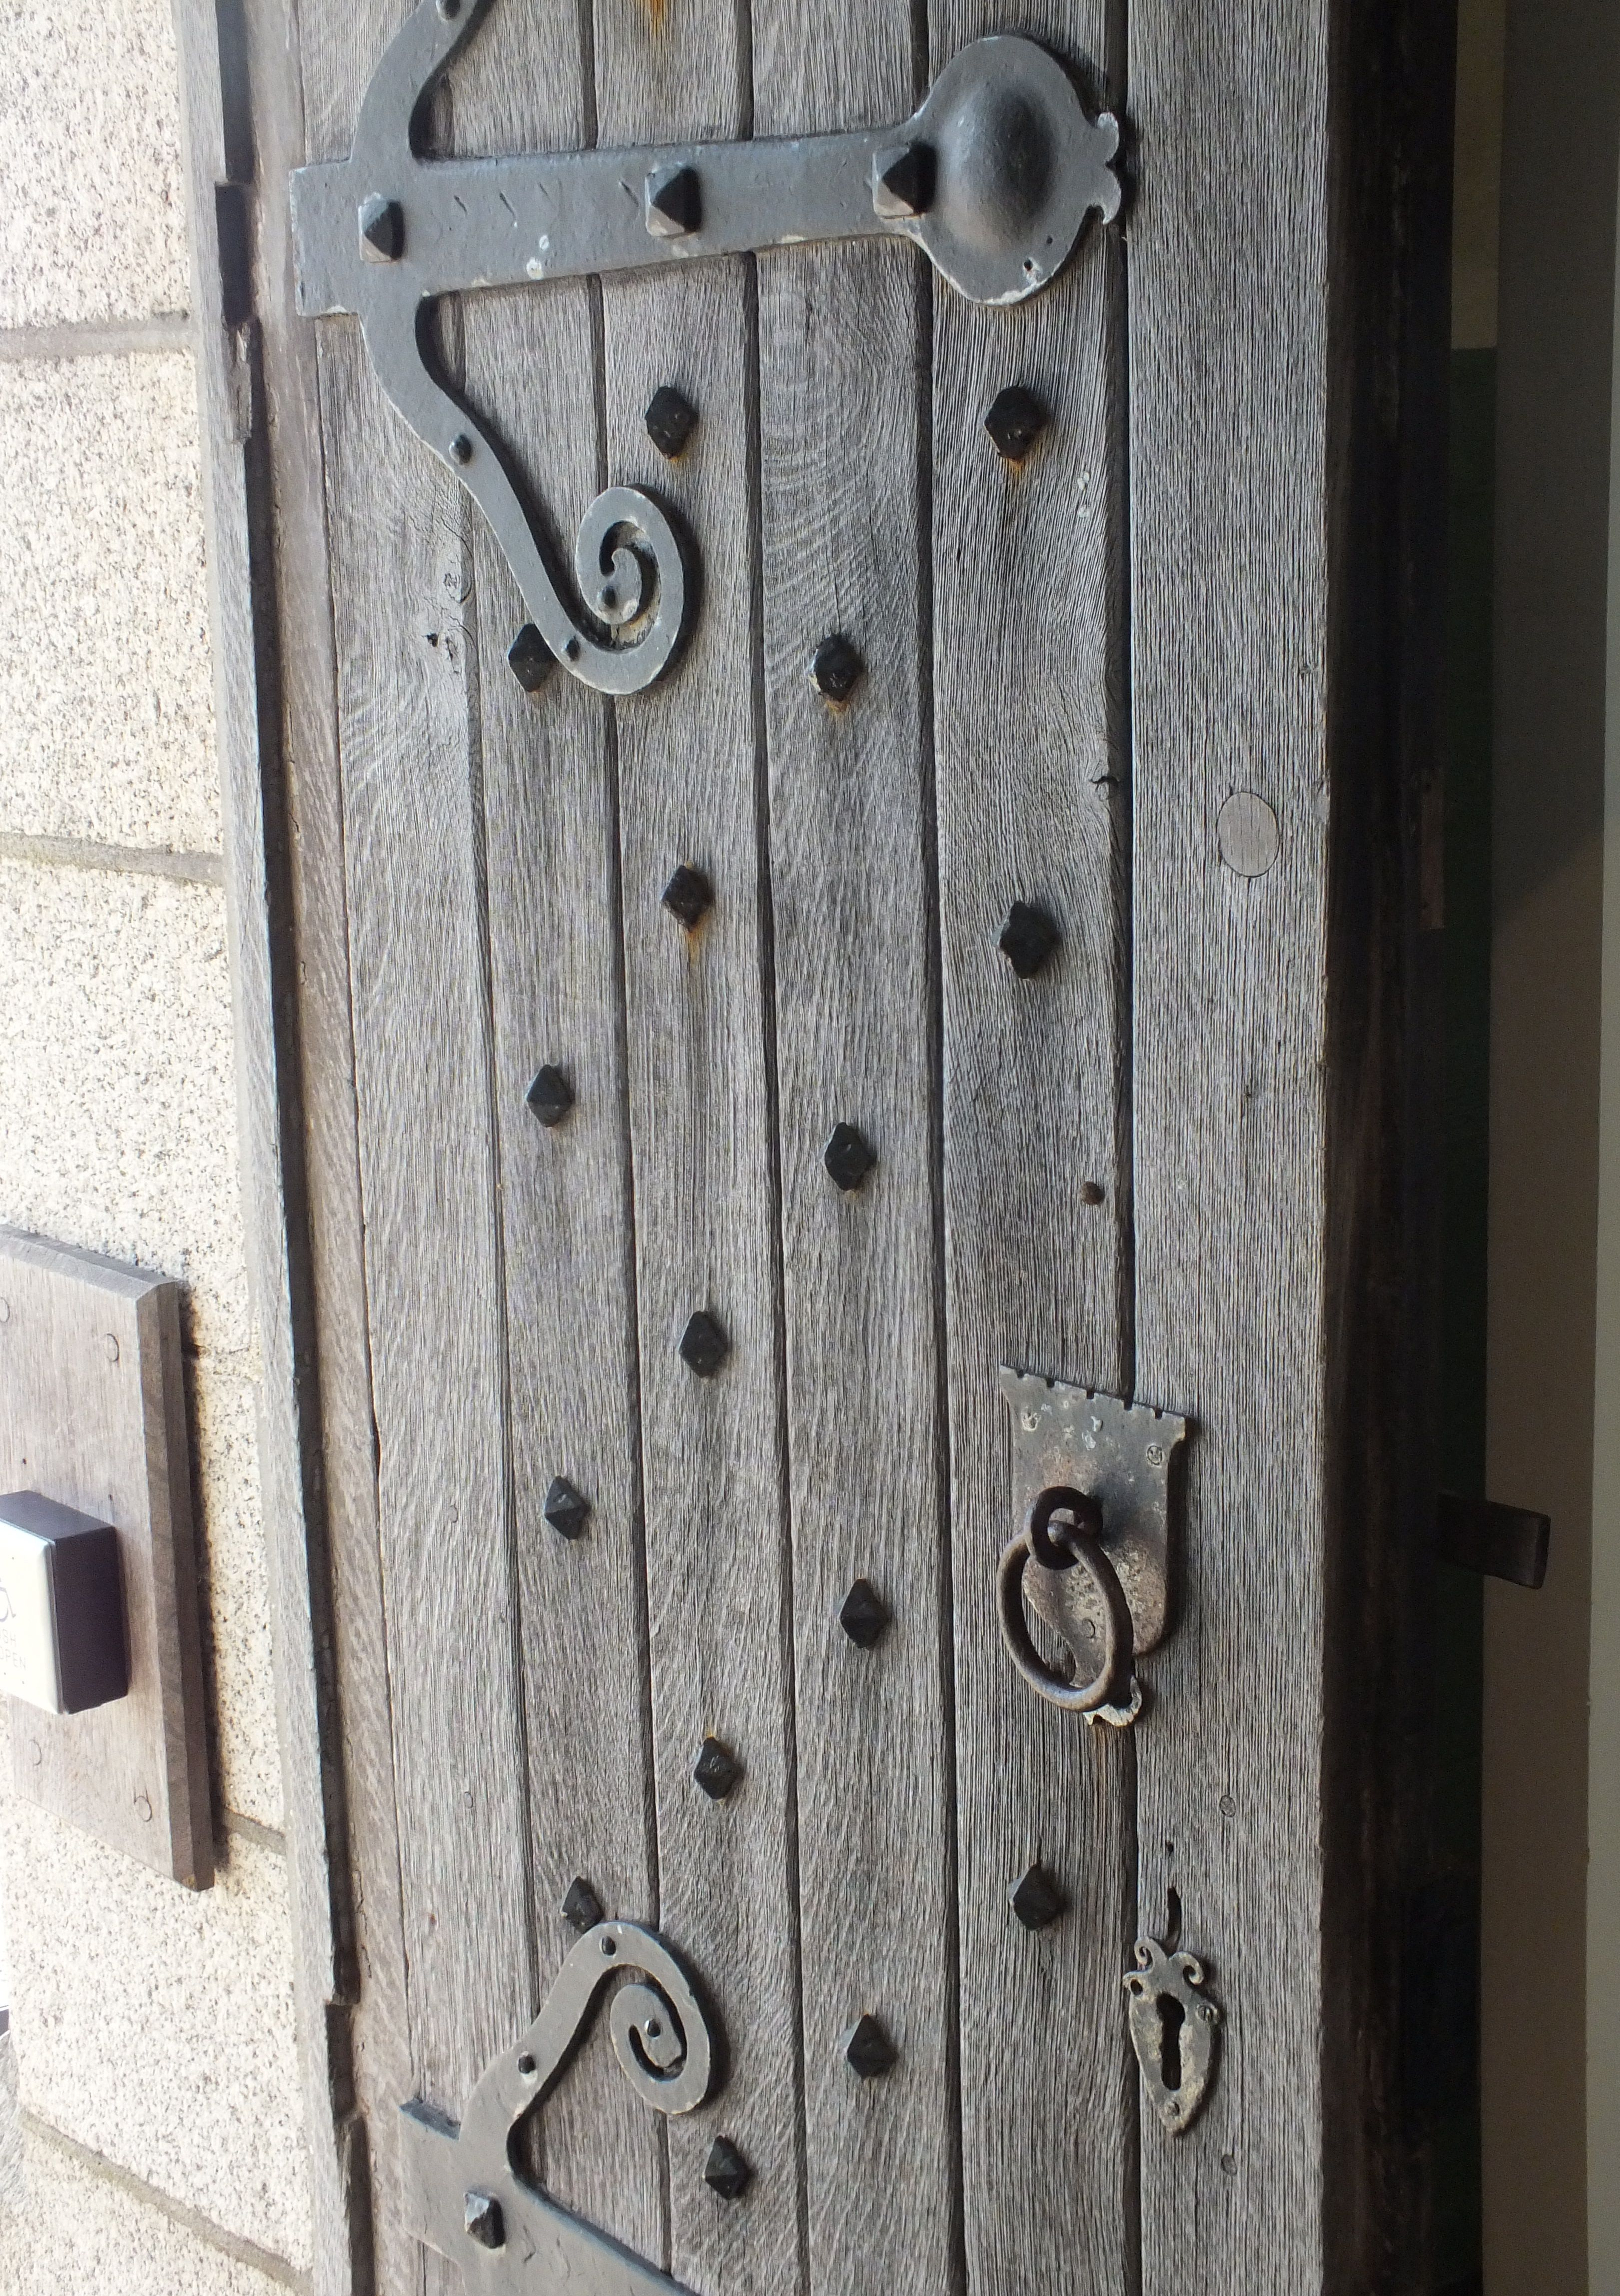 Barn door strap hinges - Fantastic Old Oak Door With Wrought Iron Ironmongery Large Strap Hinges Doors Studs And